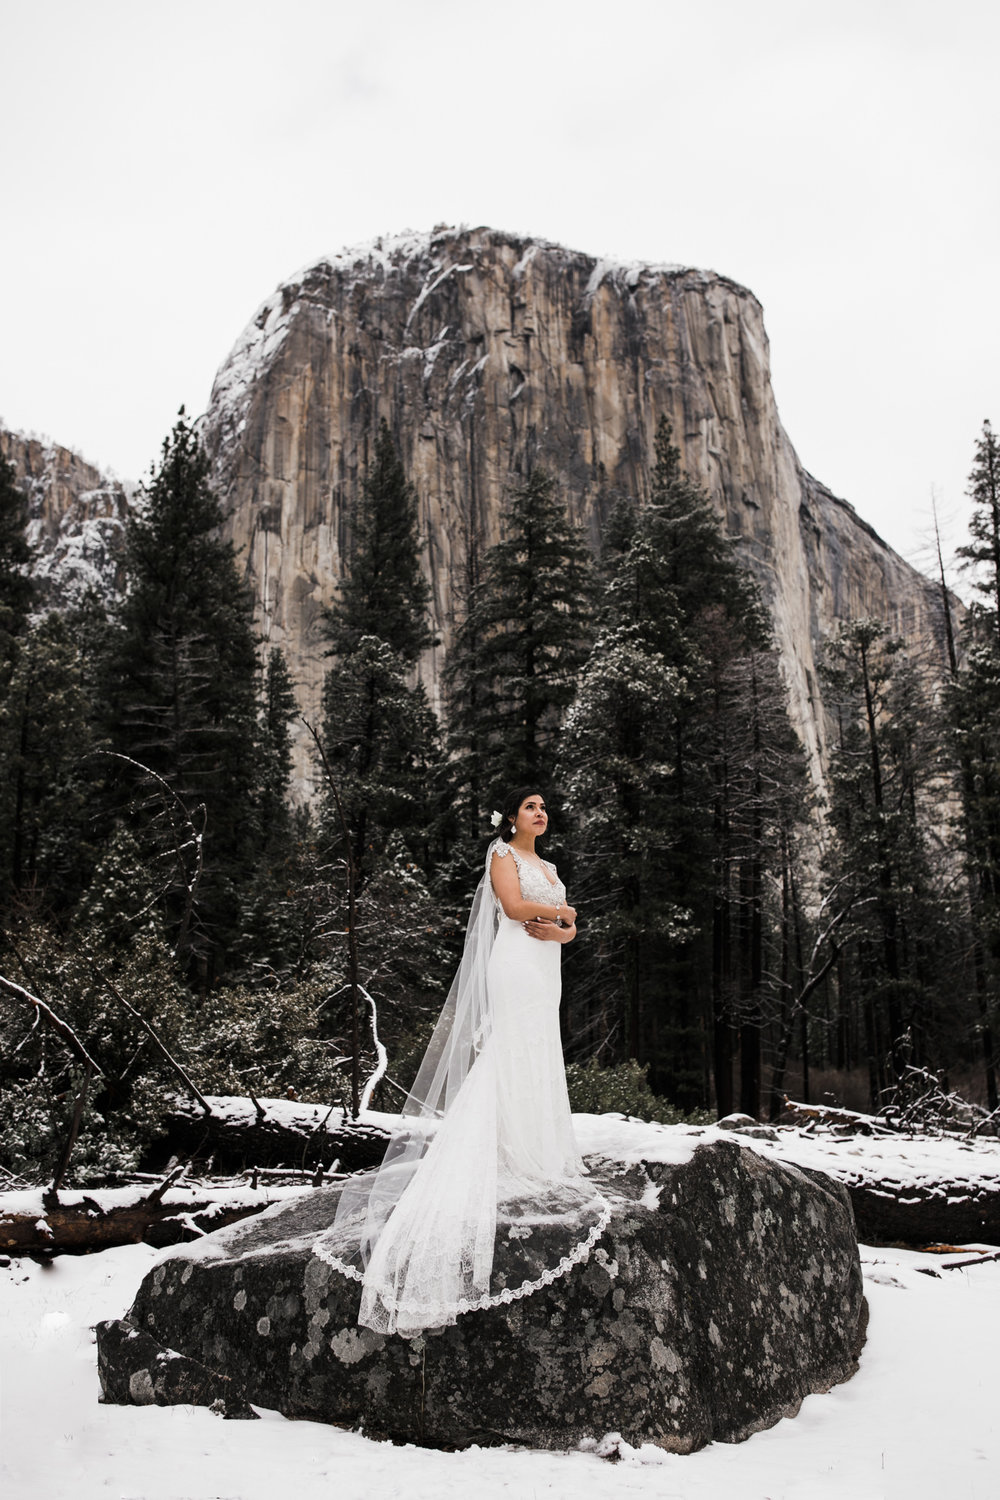 winter elopement locations, yosemite national park